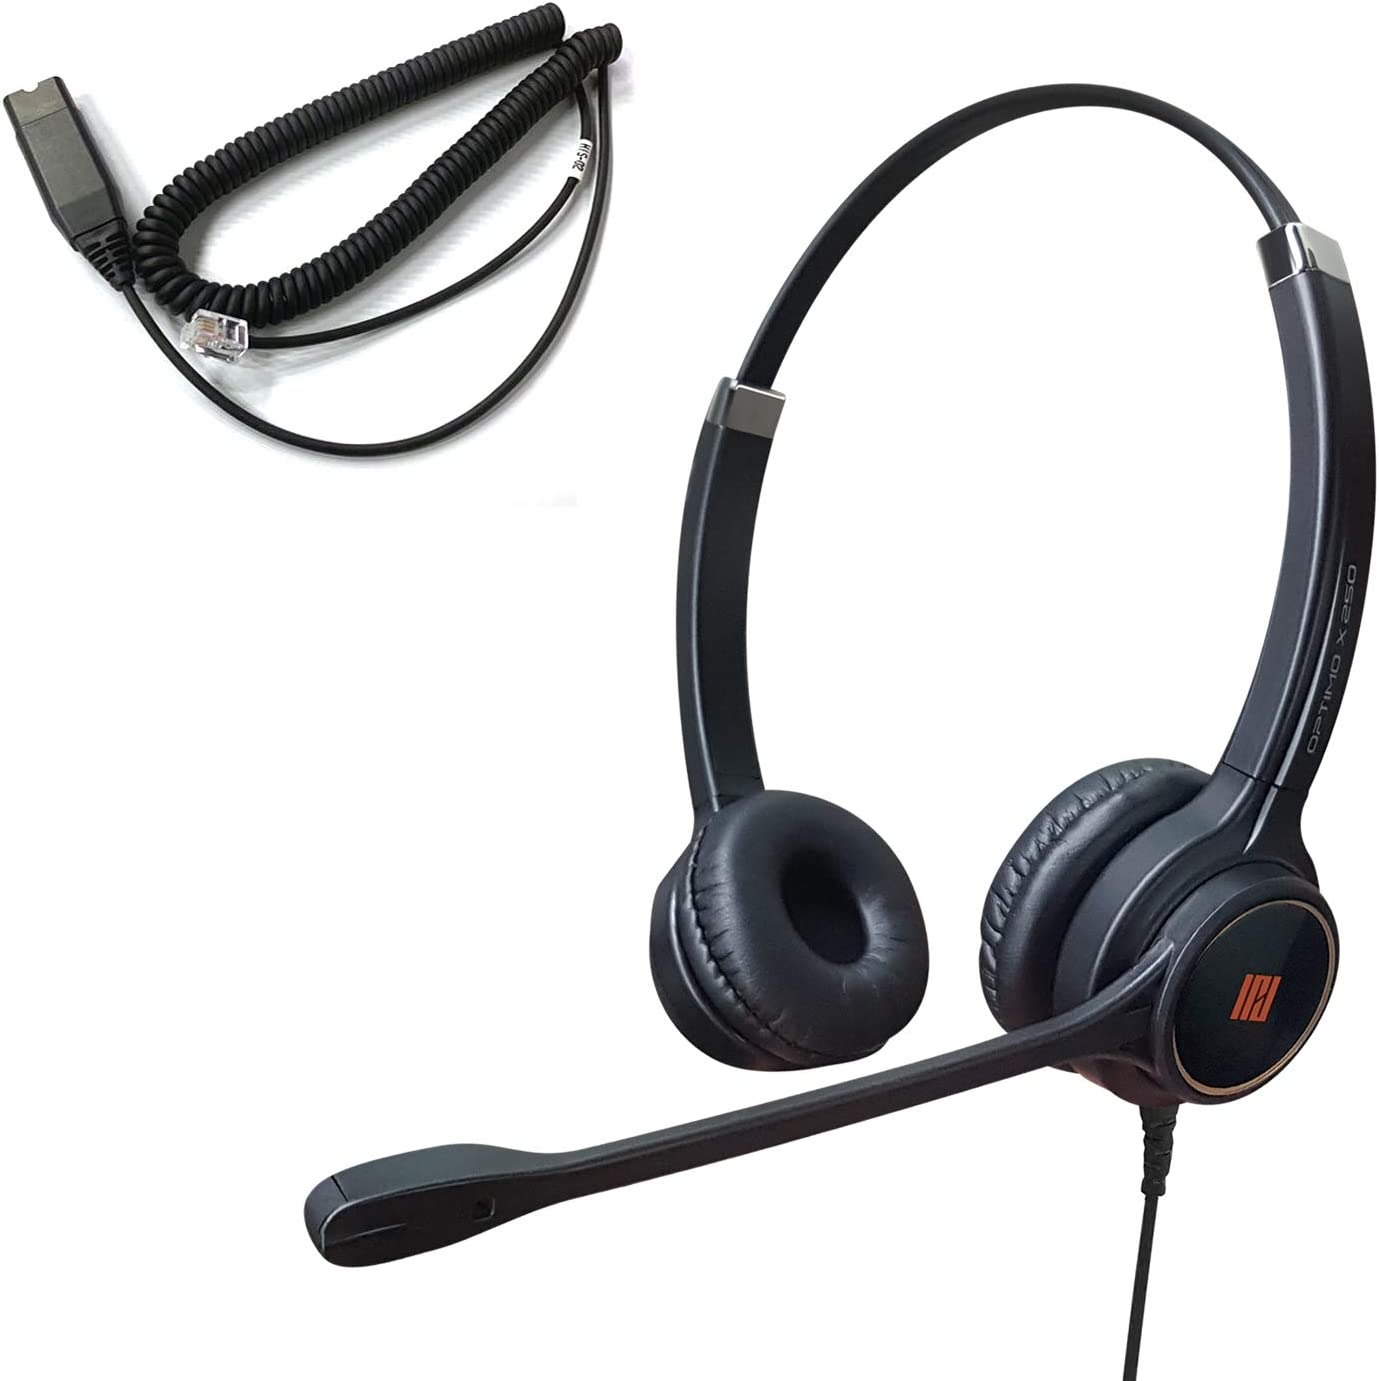 IPD IPH-255 Optimo-X Duo Ear Noise canceling, Corded Headset with HIS-02 Cable for Avaya IP1608,1616,9608G, 9611G,9610, 9620, 9620L, 9620C, 9630, 9630G, 9640, 9640G, 9650, 9670 IP Phones